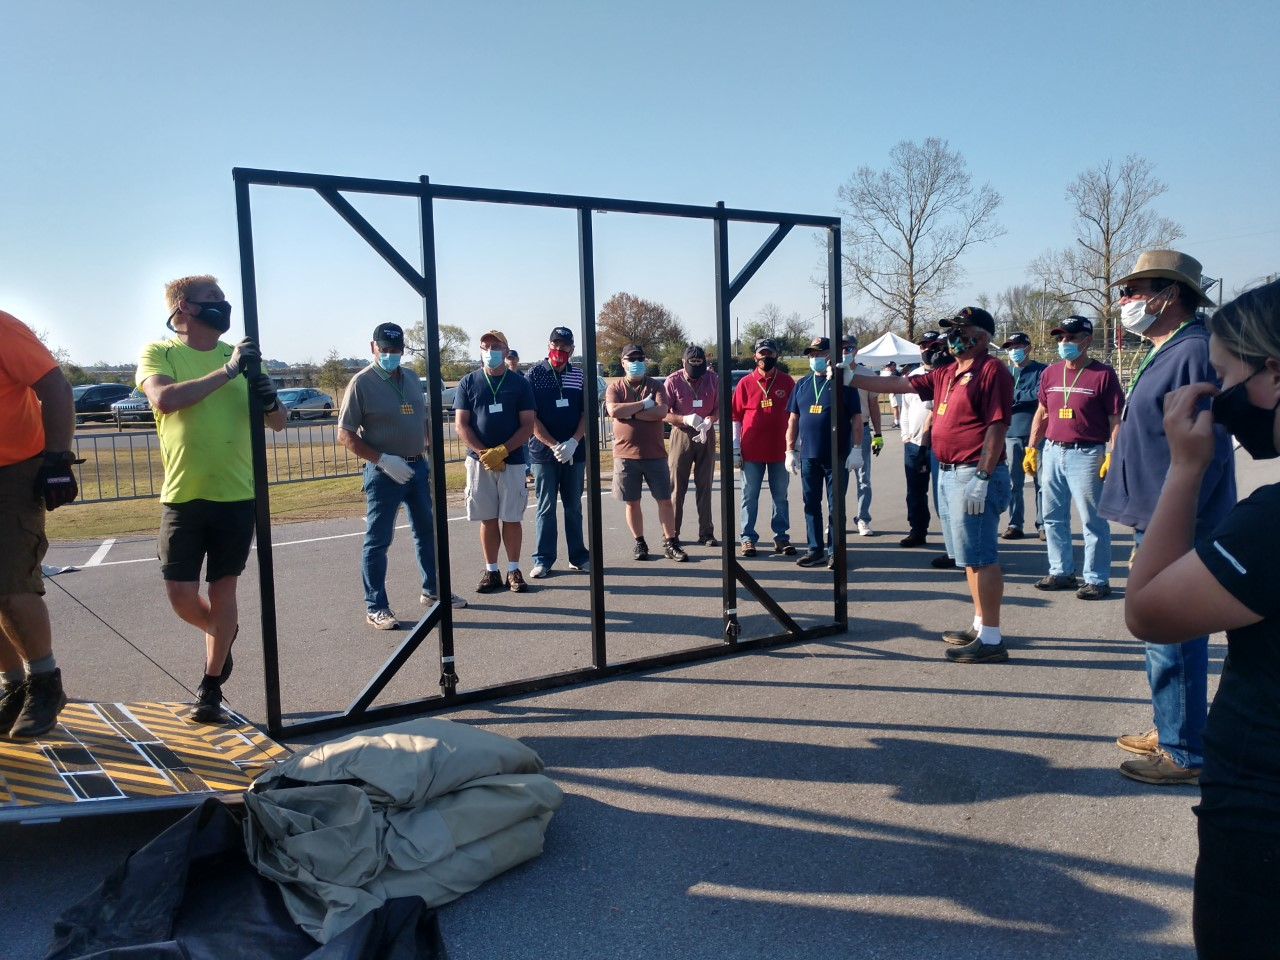 See The Wall That Heals Get Assembled in New Bern